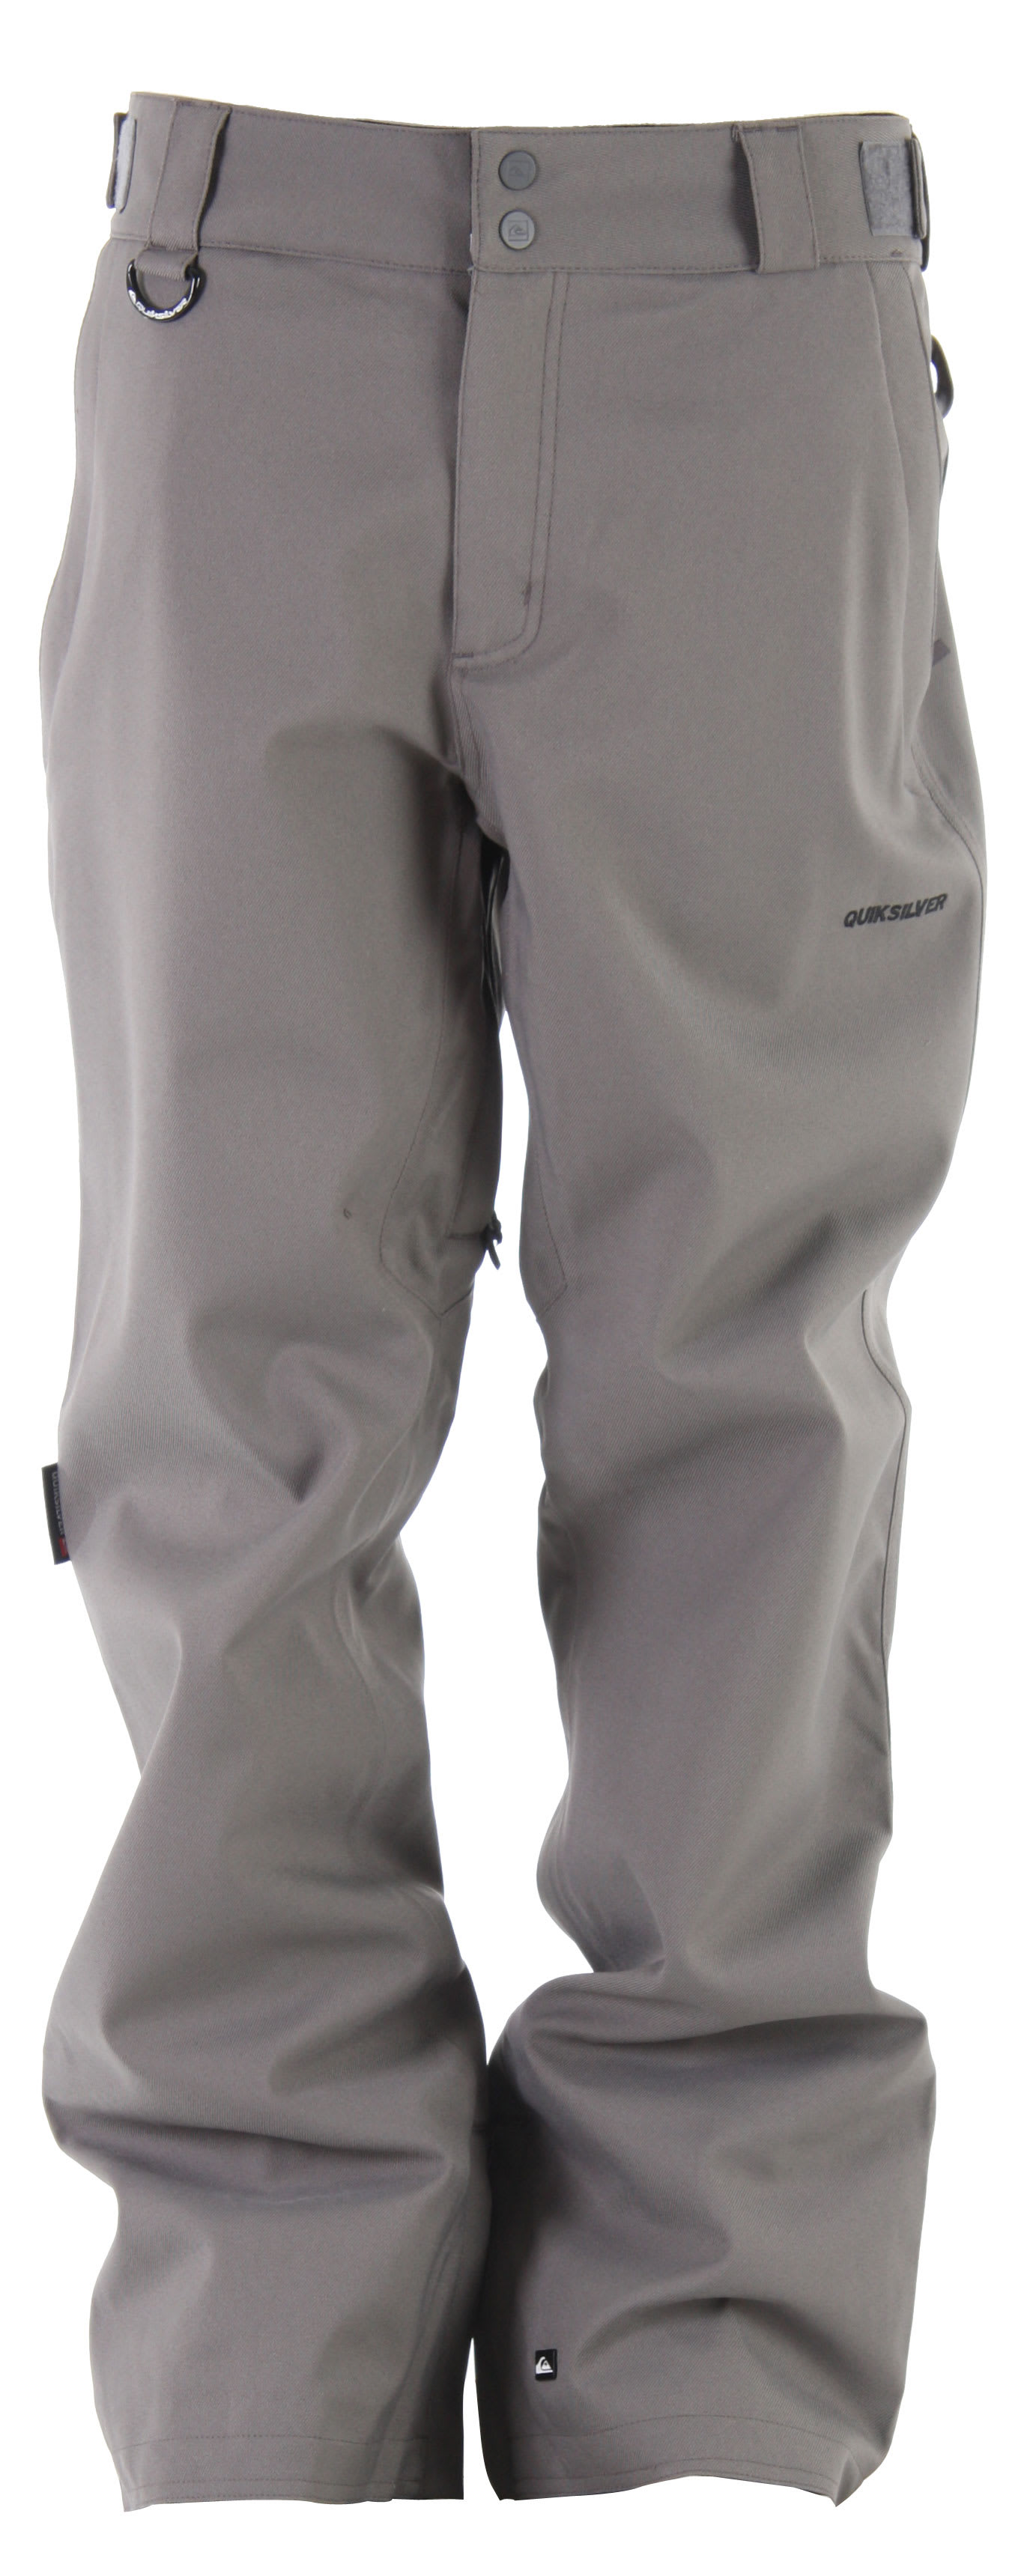 Shop for Quiksilver Tuff Spins Shell Snowboard Pants Smoke - Men's